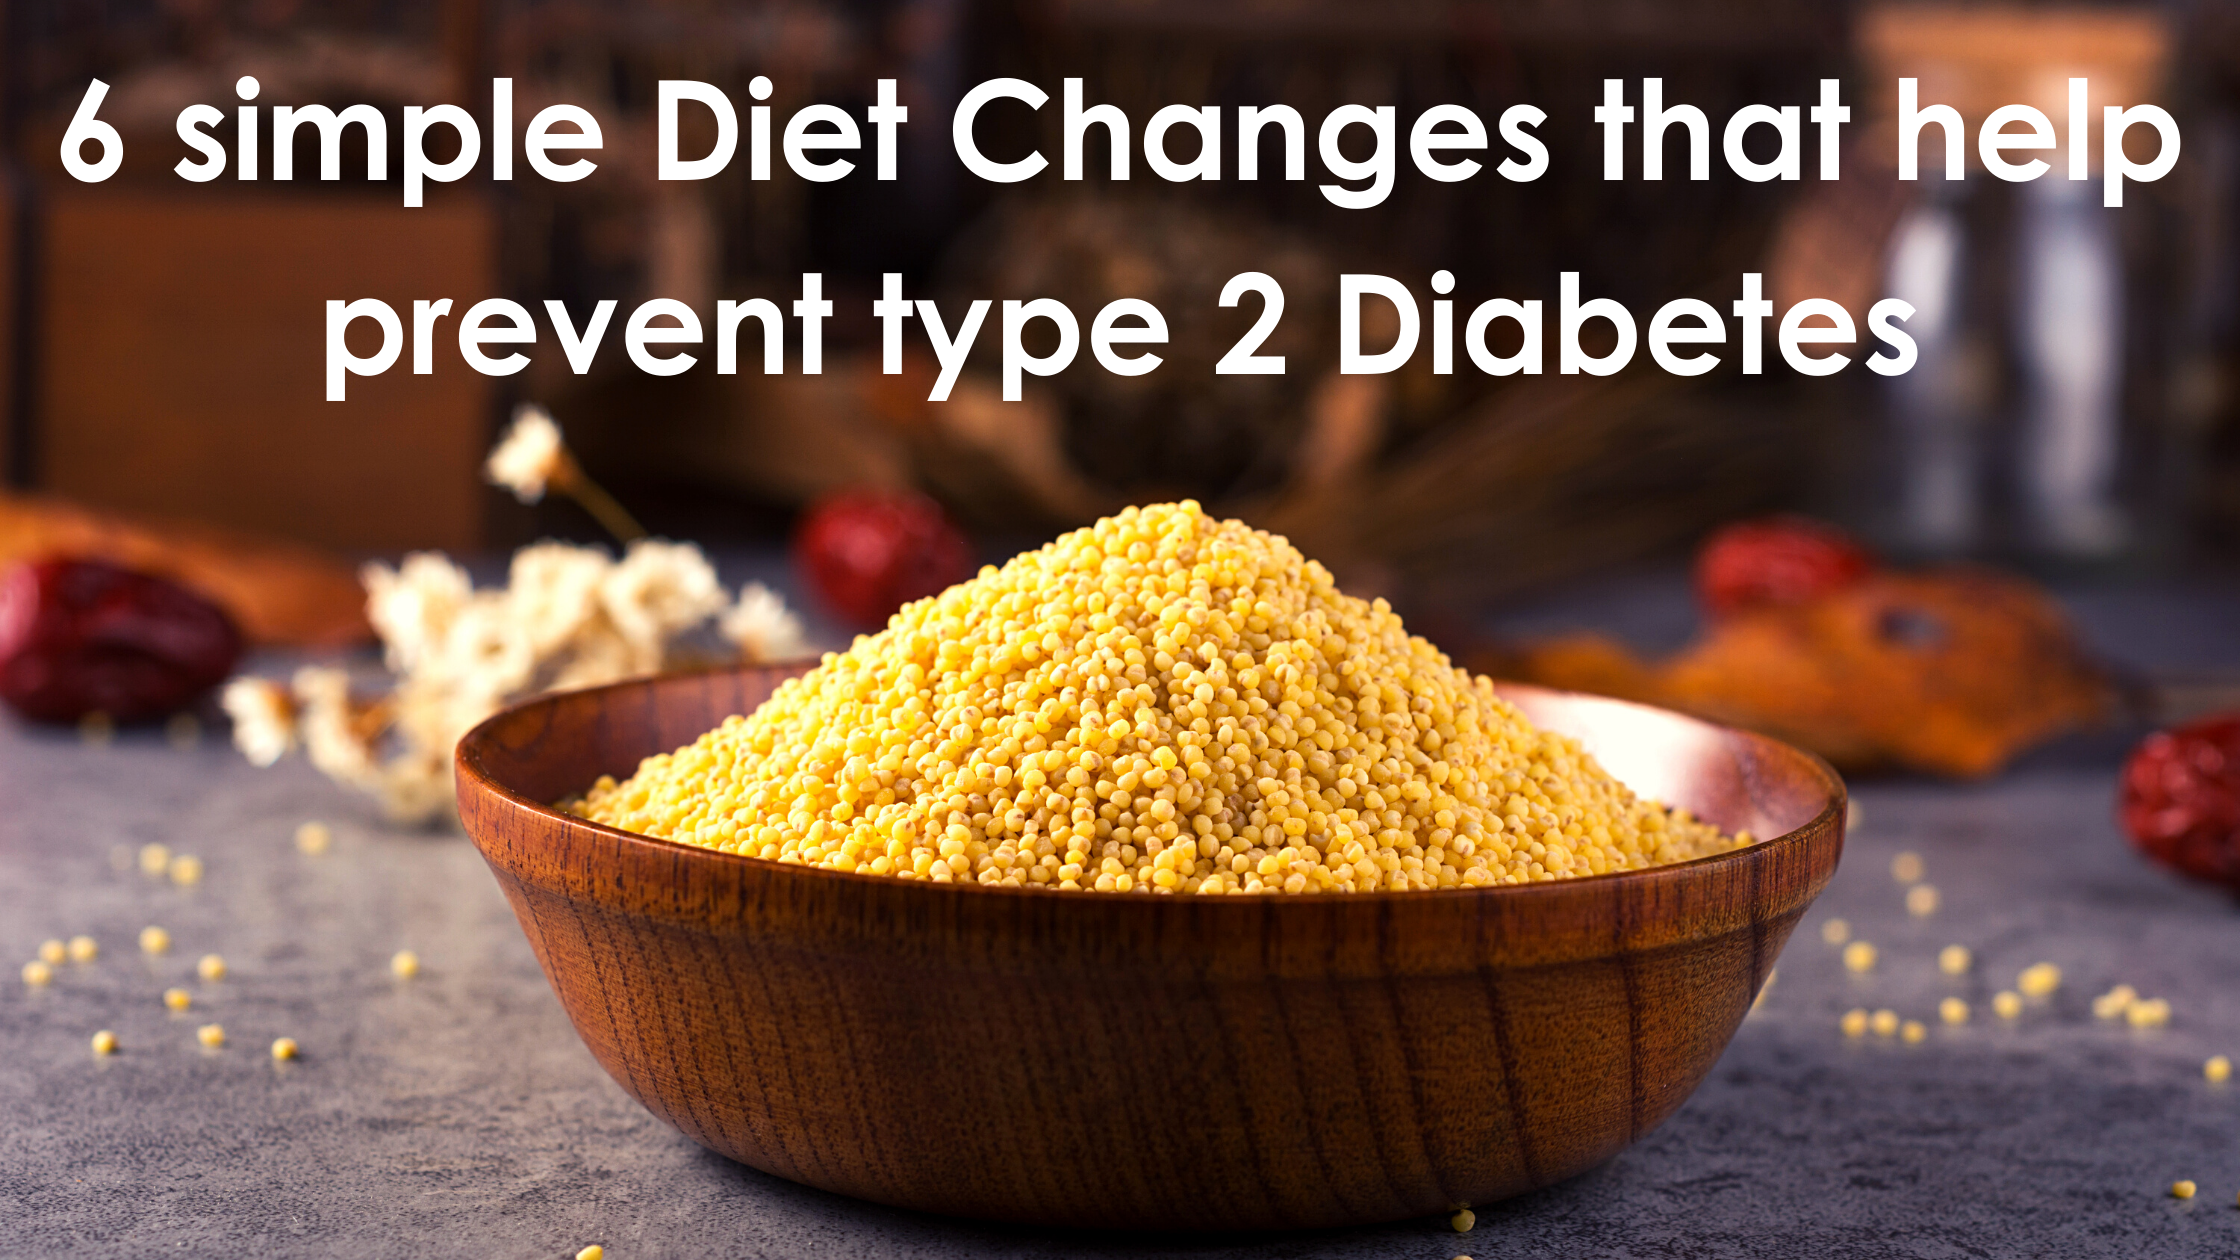 6 simple Diet Changes that help prevent type 2 Diabetes